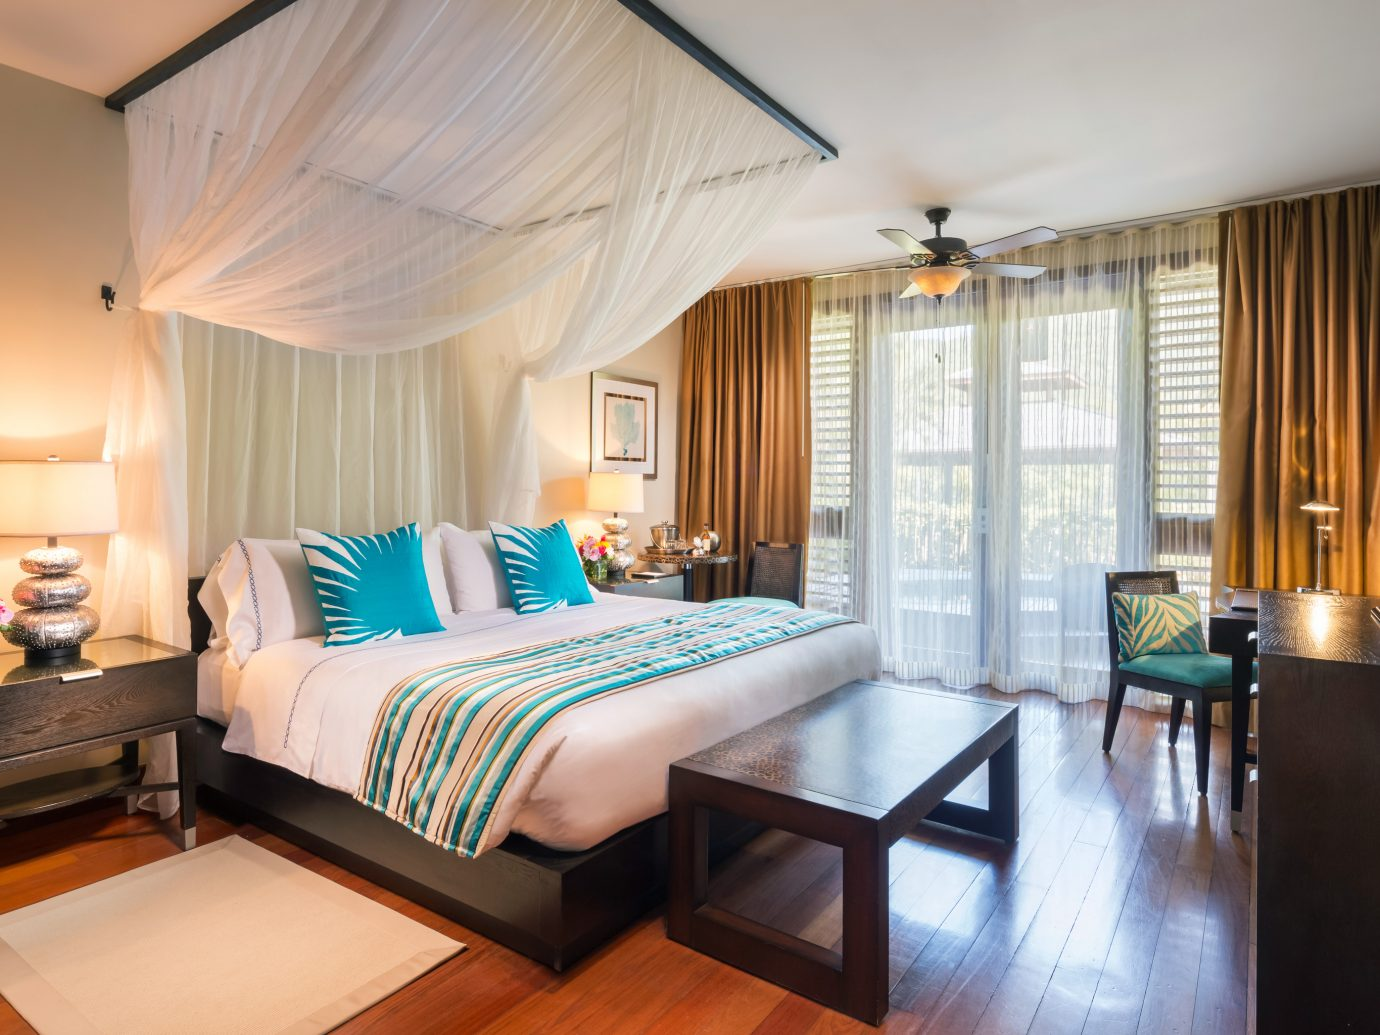 Bedroom at Marigot Bay Resort & Marina